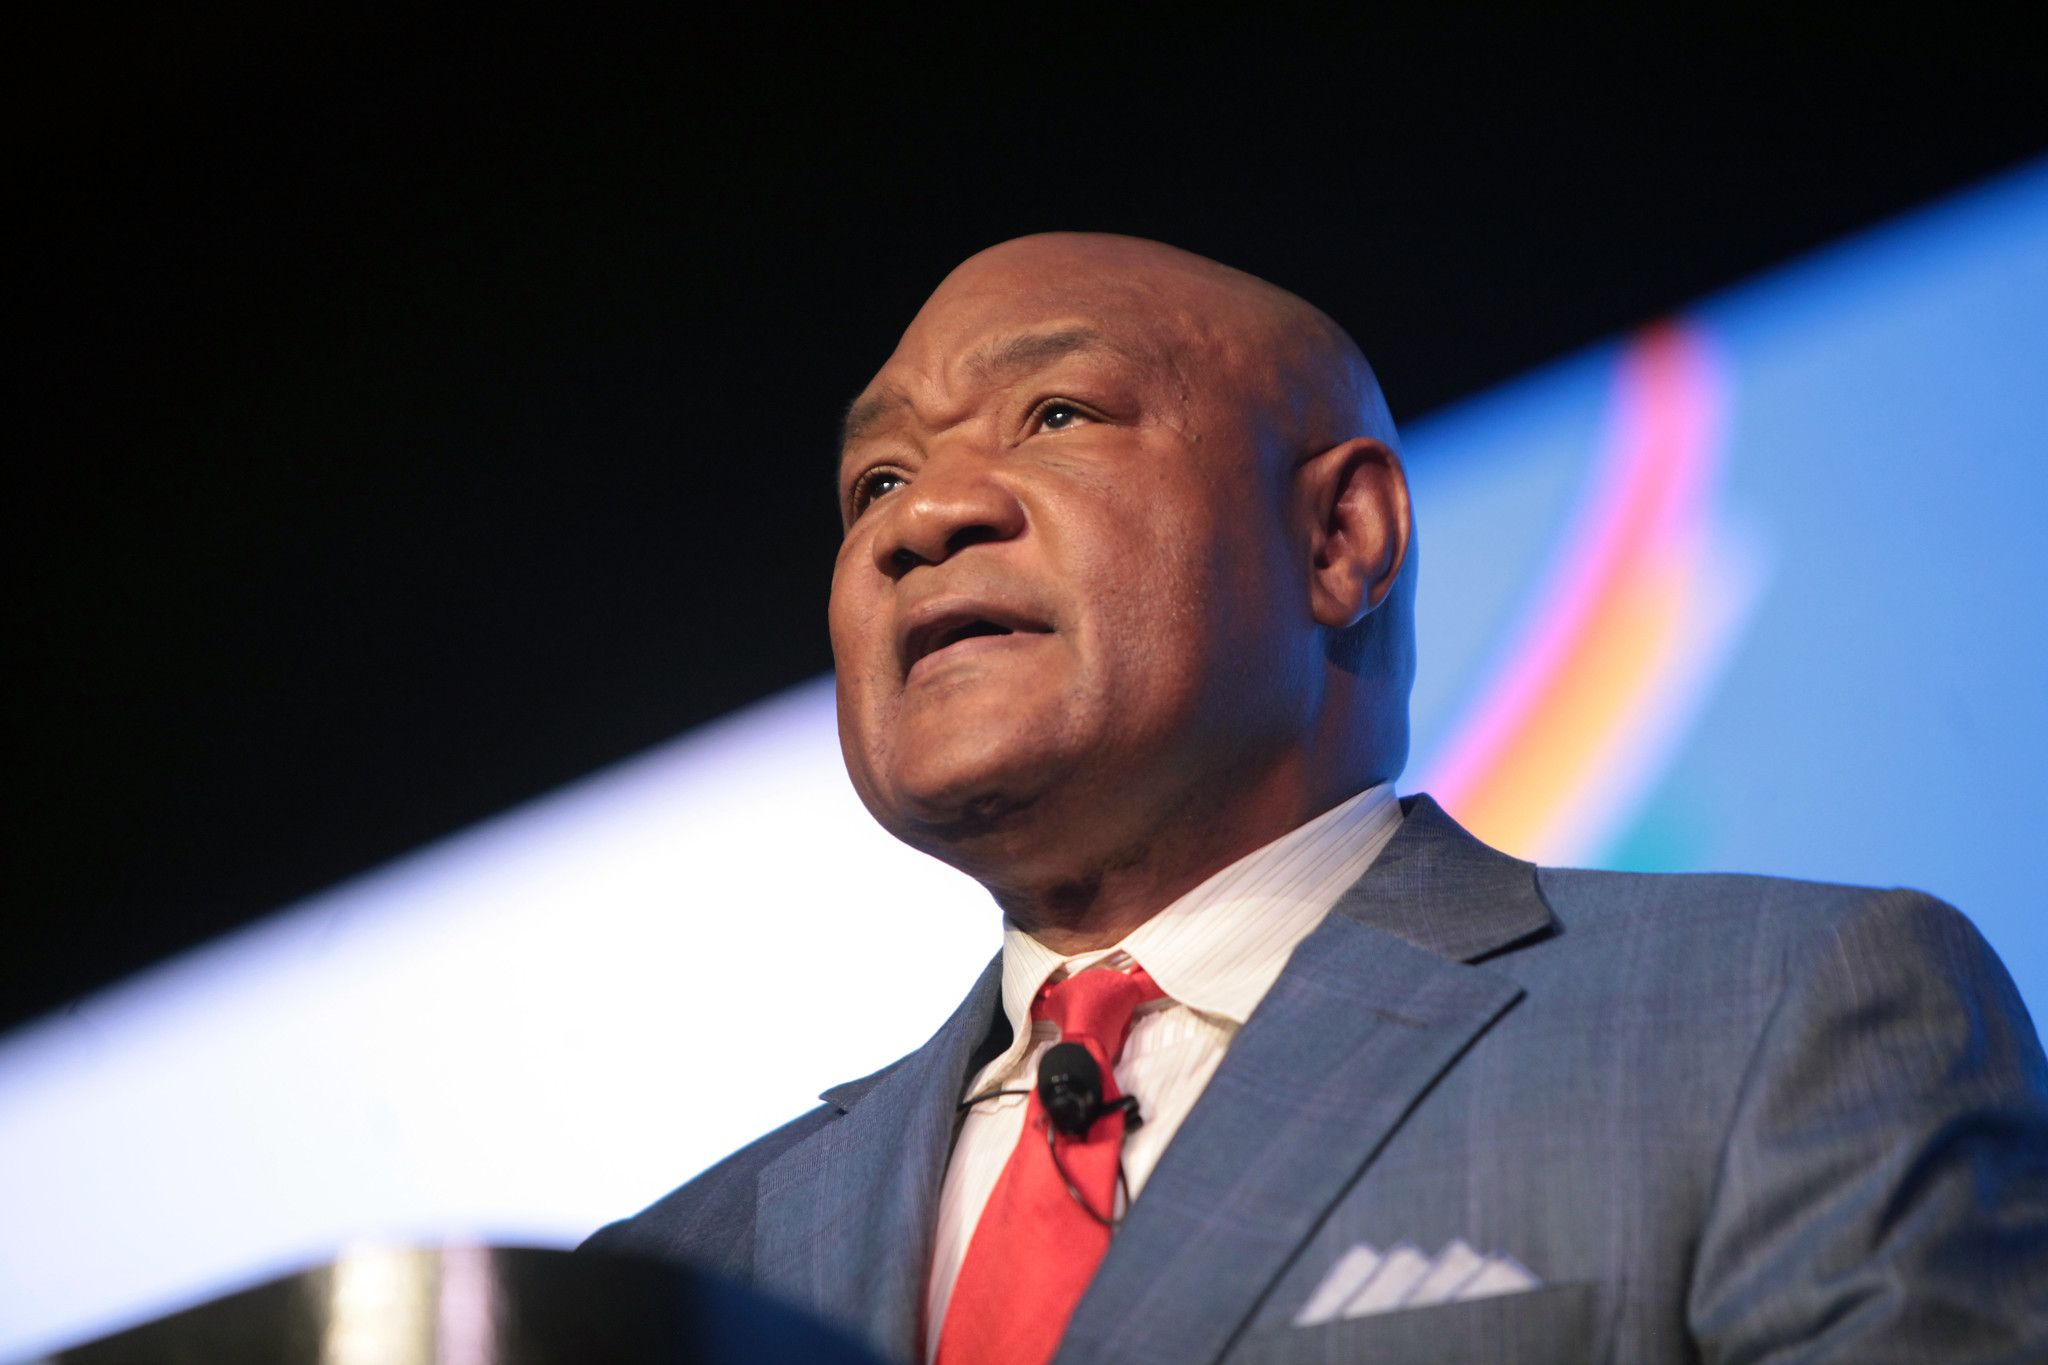 George Foreman Reveals How Like Ali He Avoided Vietnam War Induction